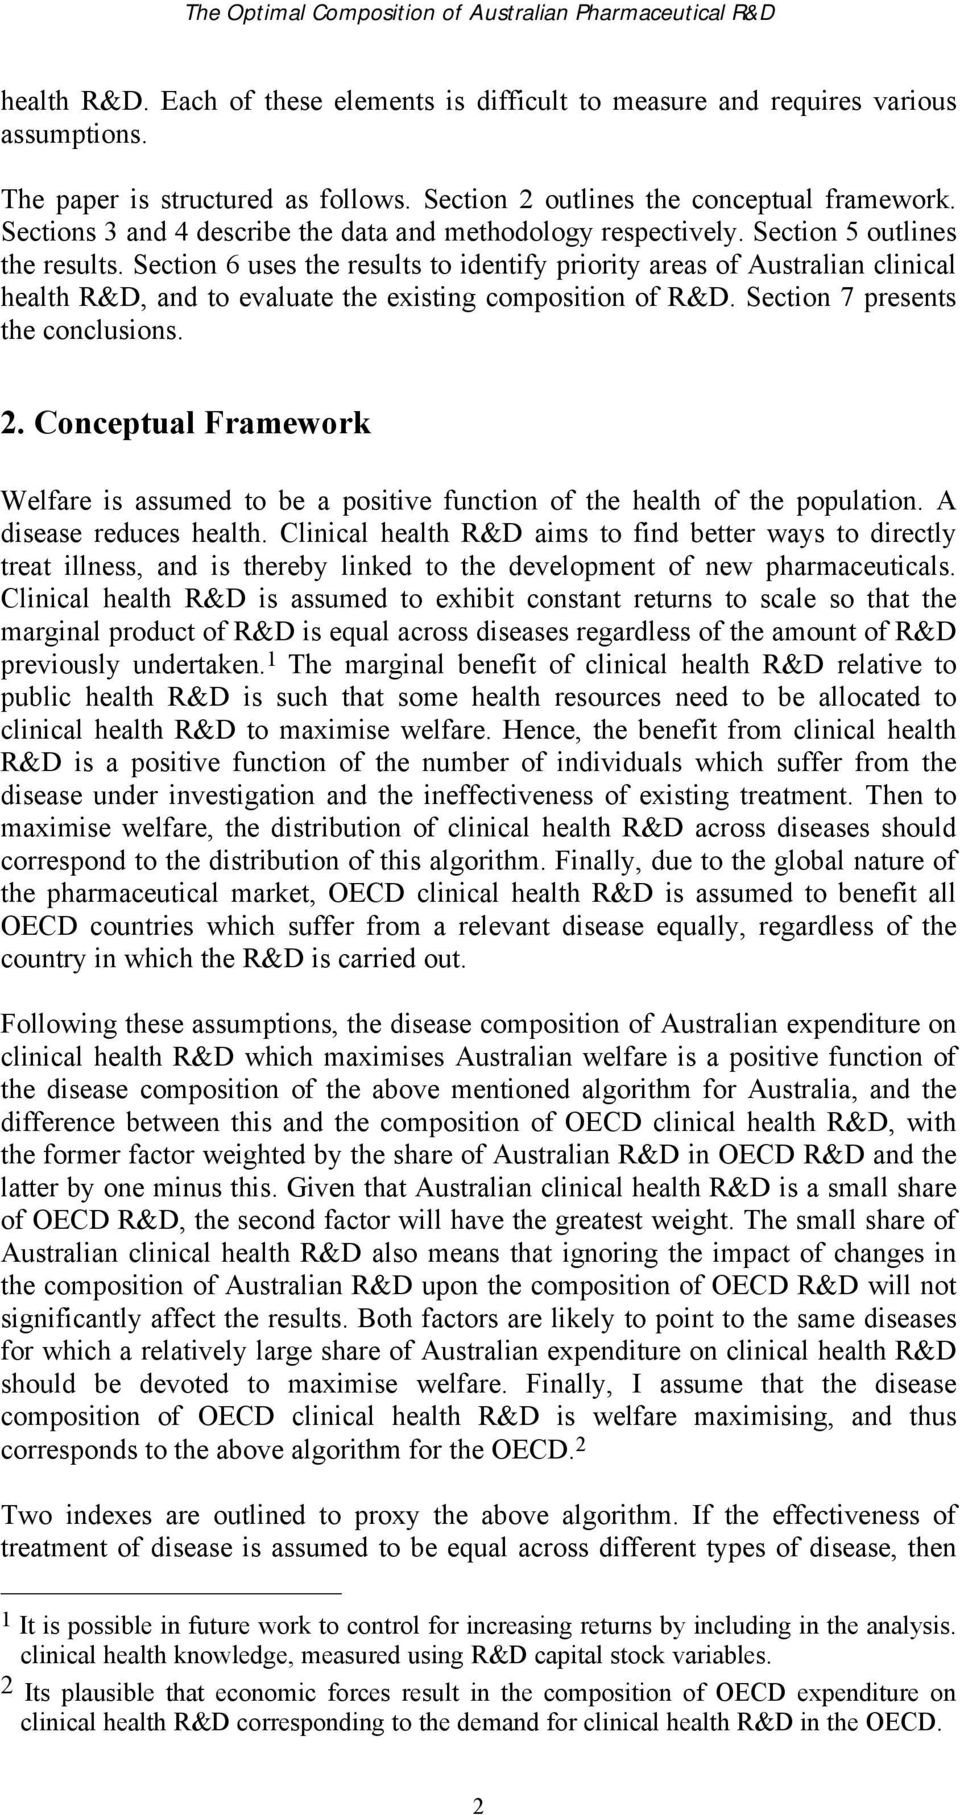 Section 6 uses the results to identify priority areas of Australian clinical health R&D, and to evaluate the existing composition of R&D. Section 7 presents the conclusions. 2.